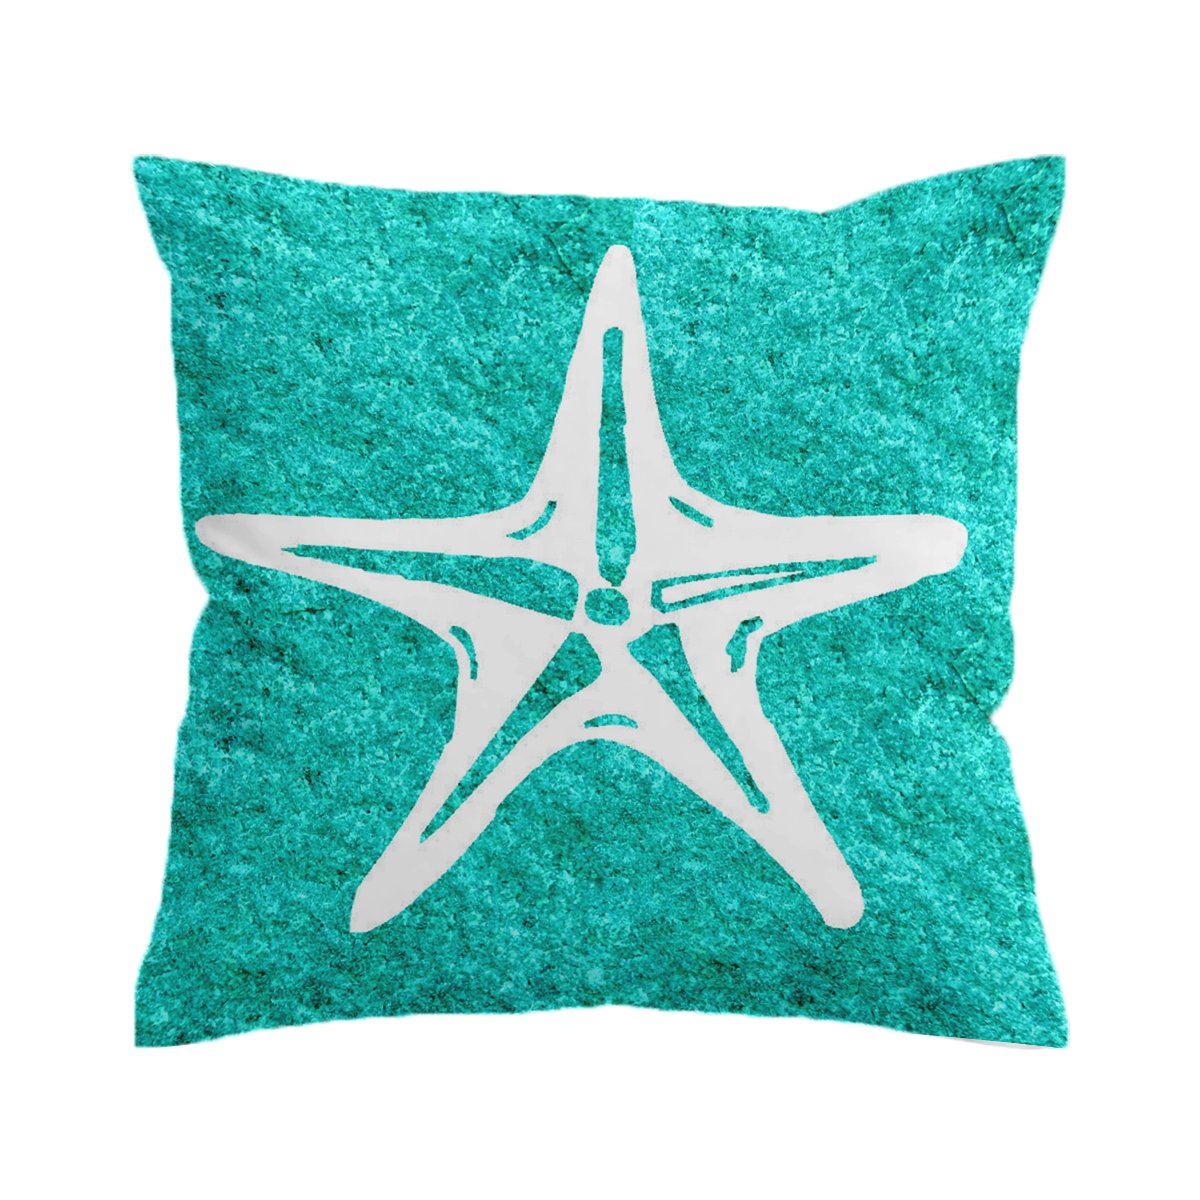 Turquoise Starfish Pillow Cover